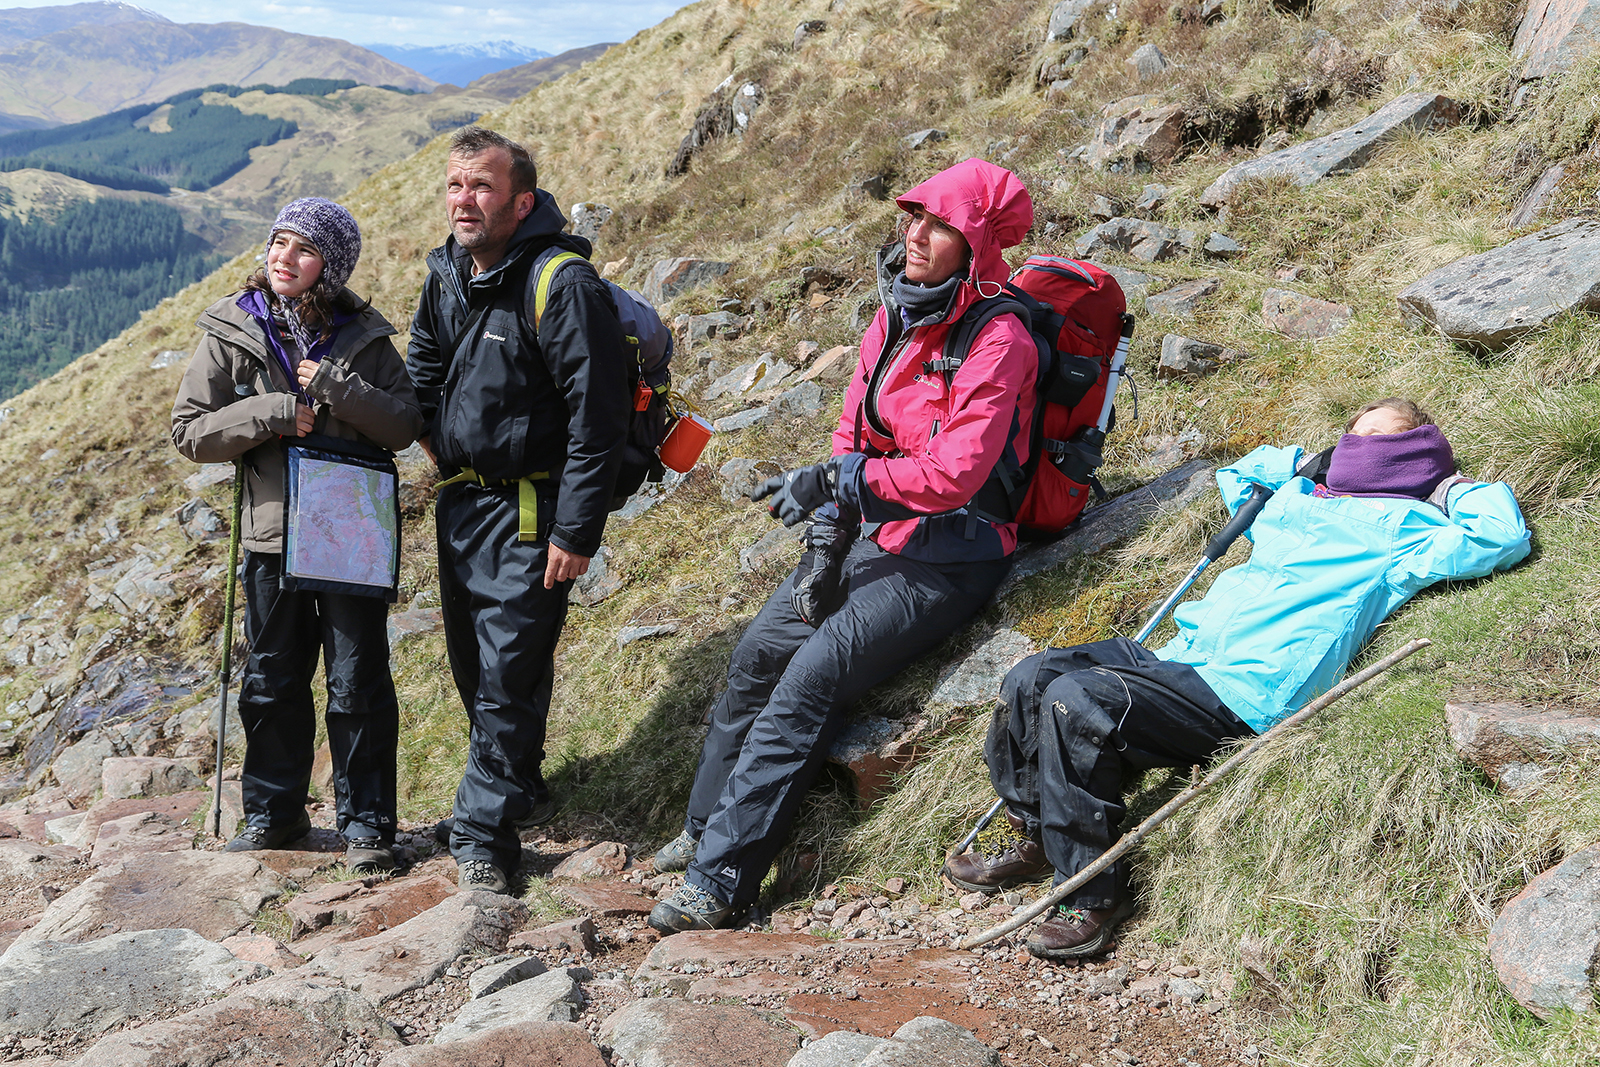 The Meek family stop for a break on an ascent of Ben Nevis, Scotland.